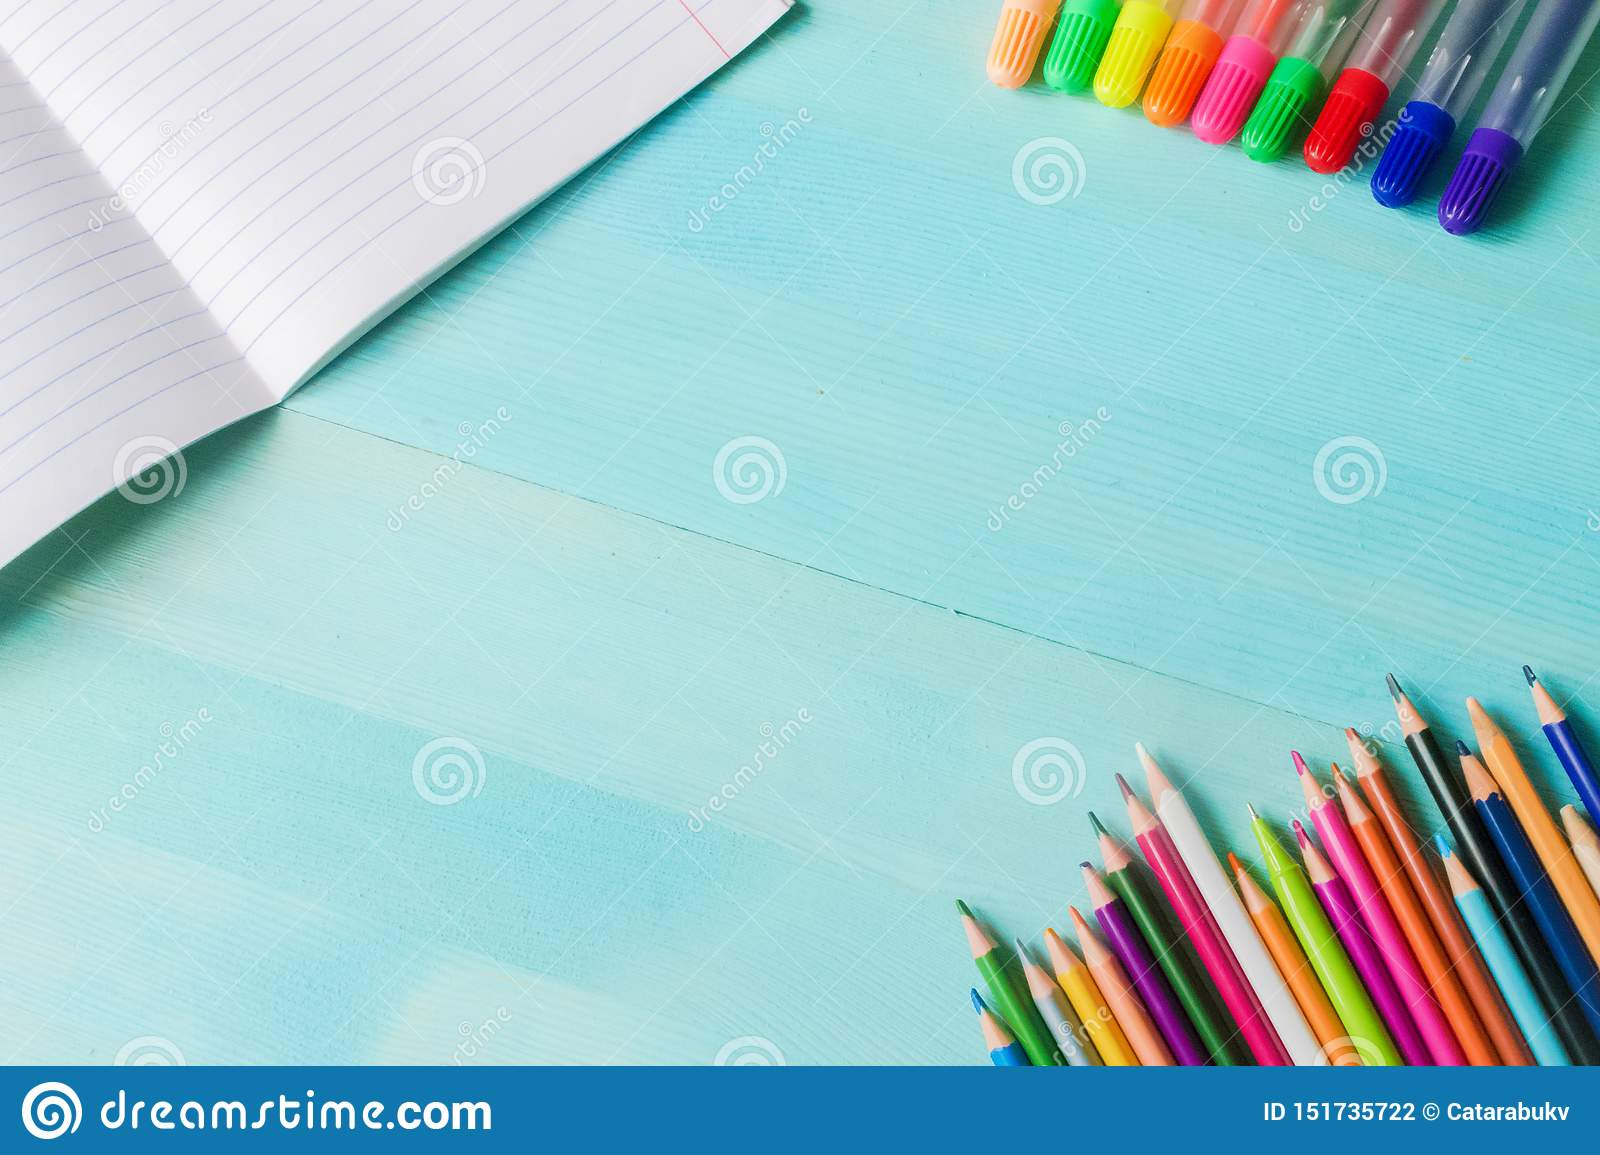 Concept back to school.School accessories, colored pencils, pen with empty notebook on blue wooden background